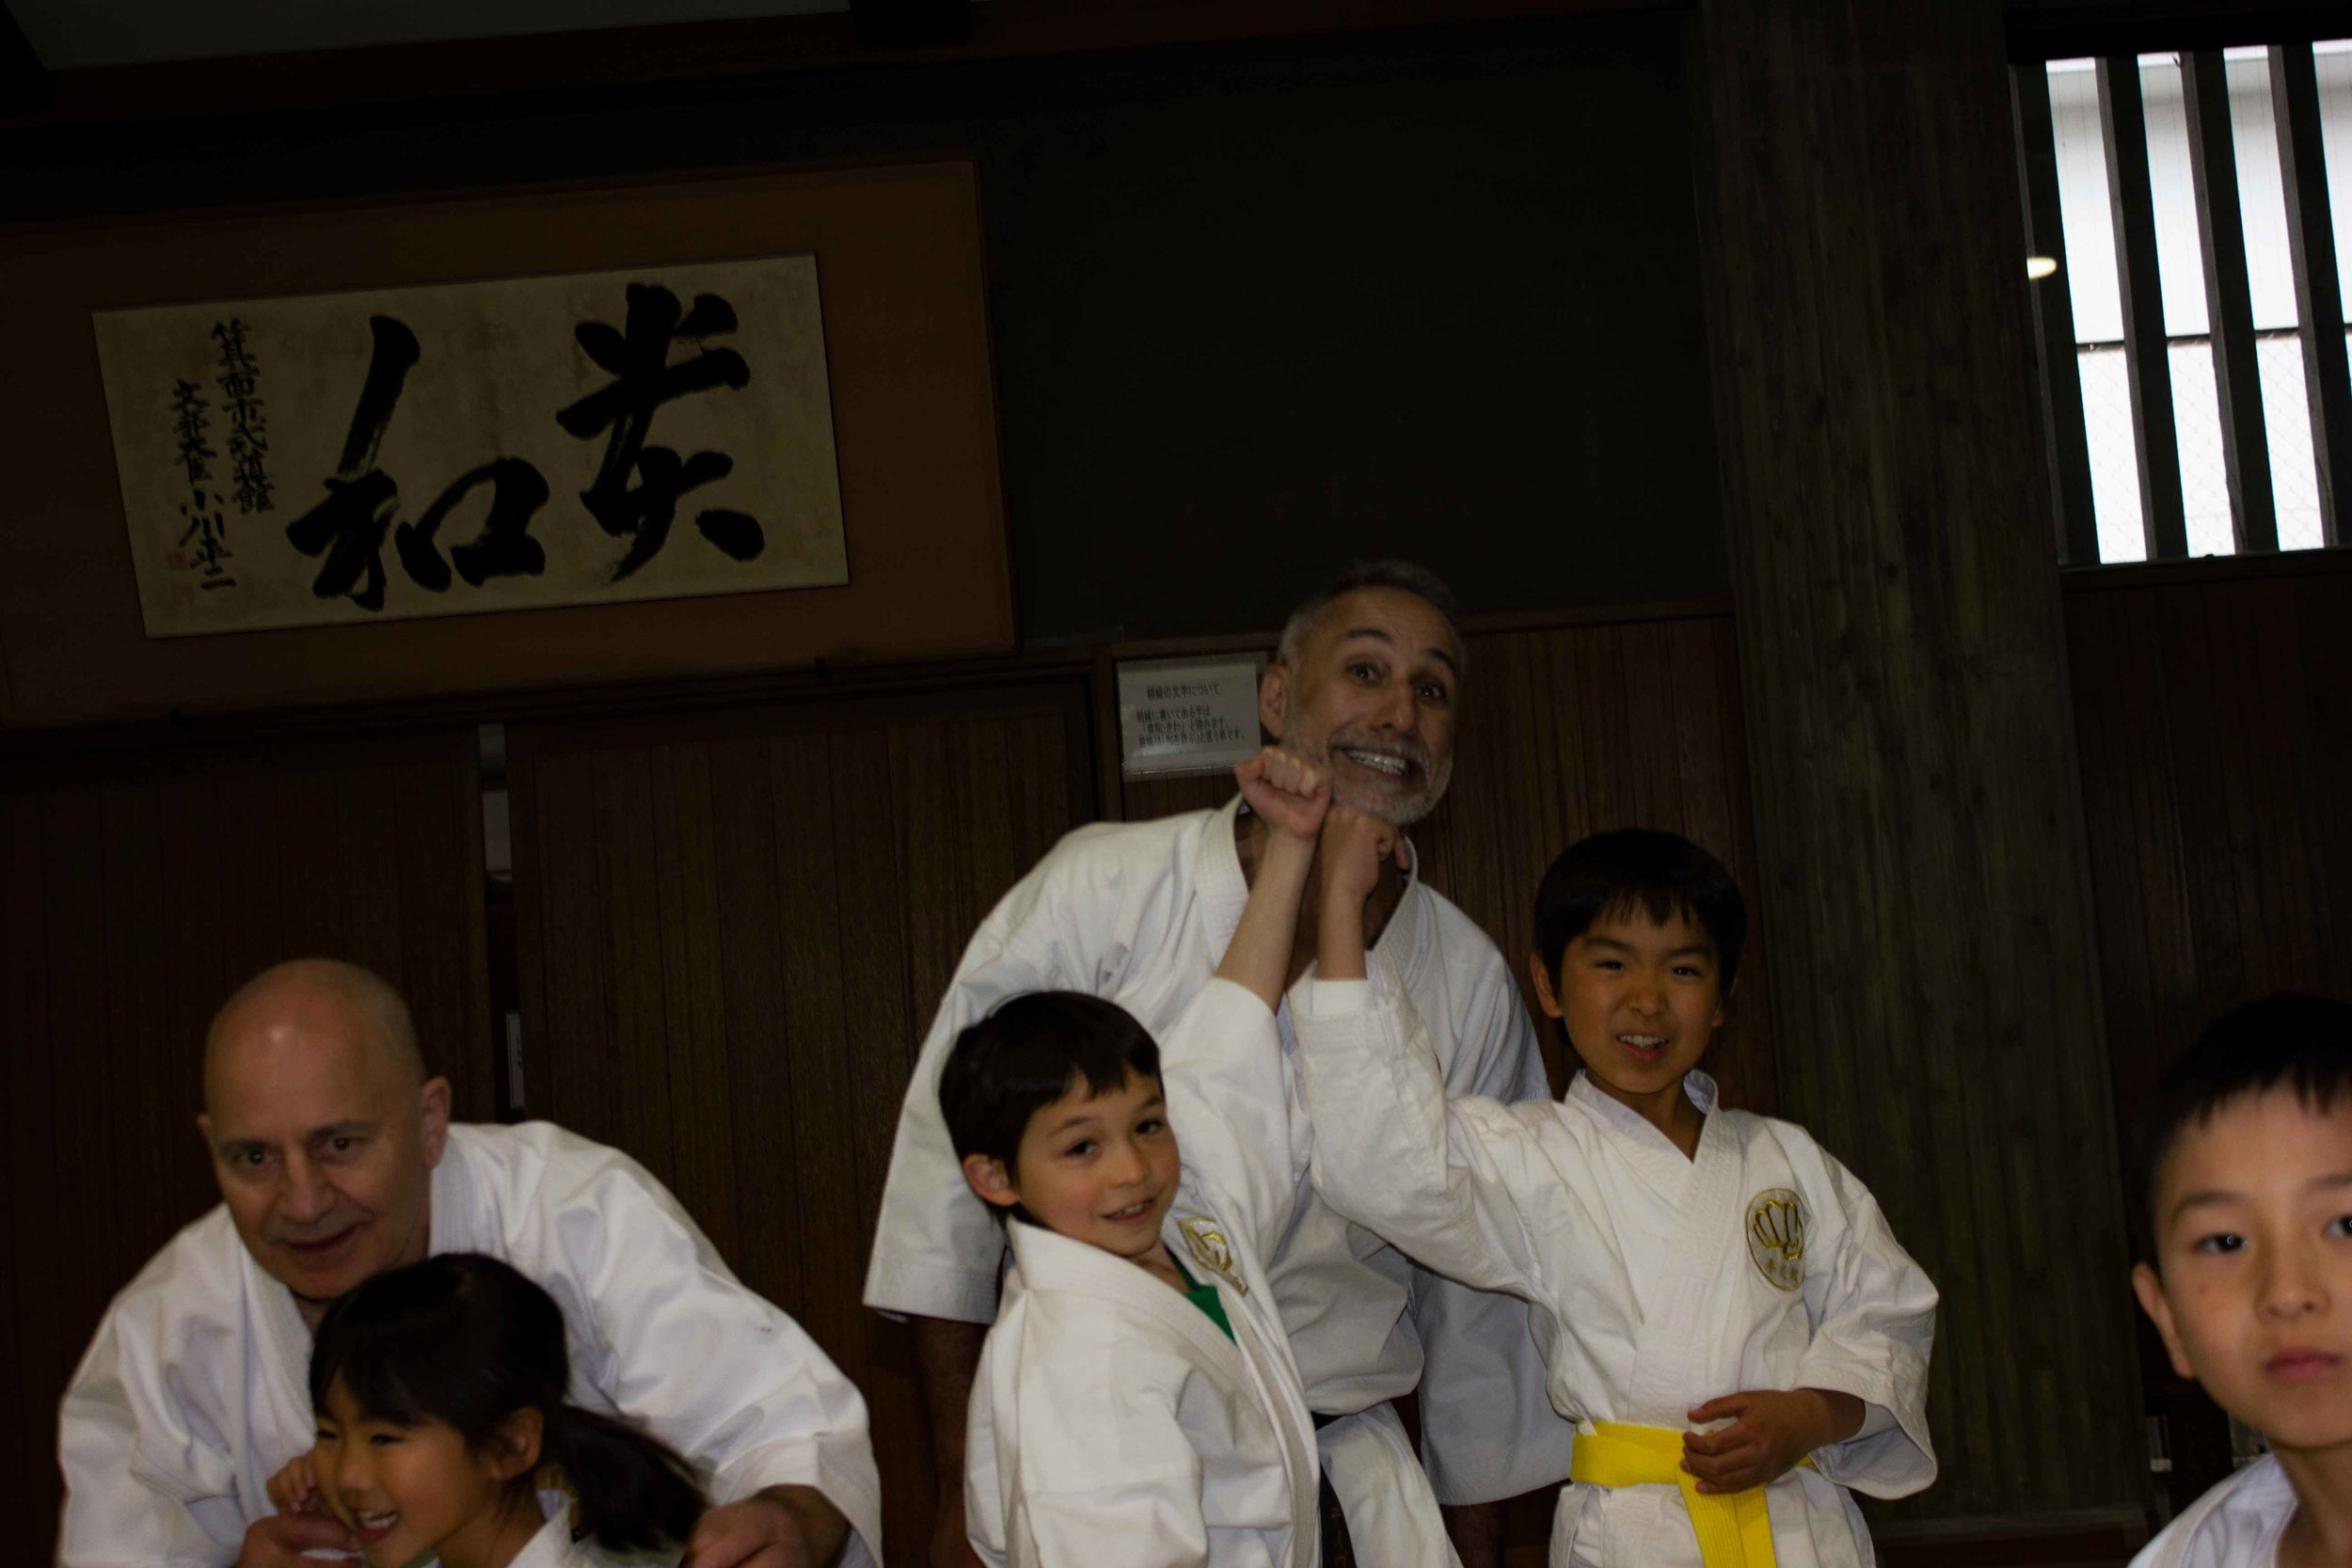 sensei-and-kids-02.jpg